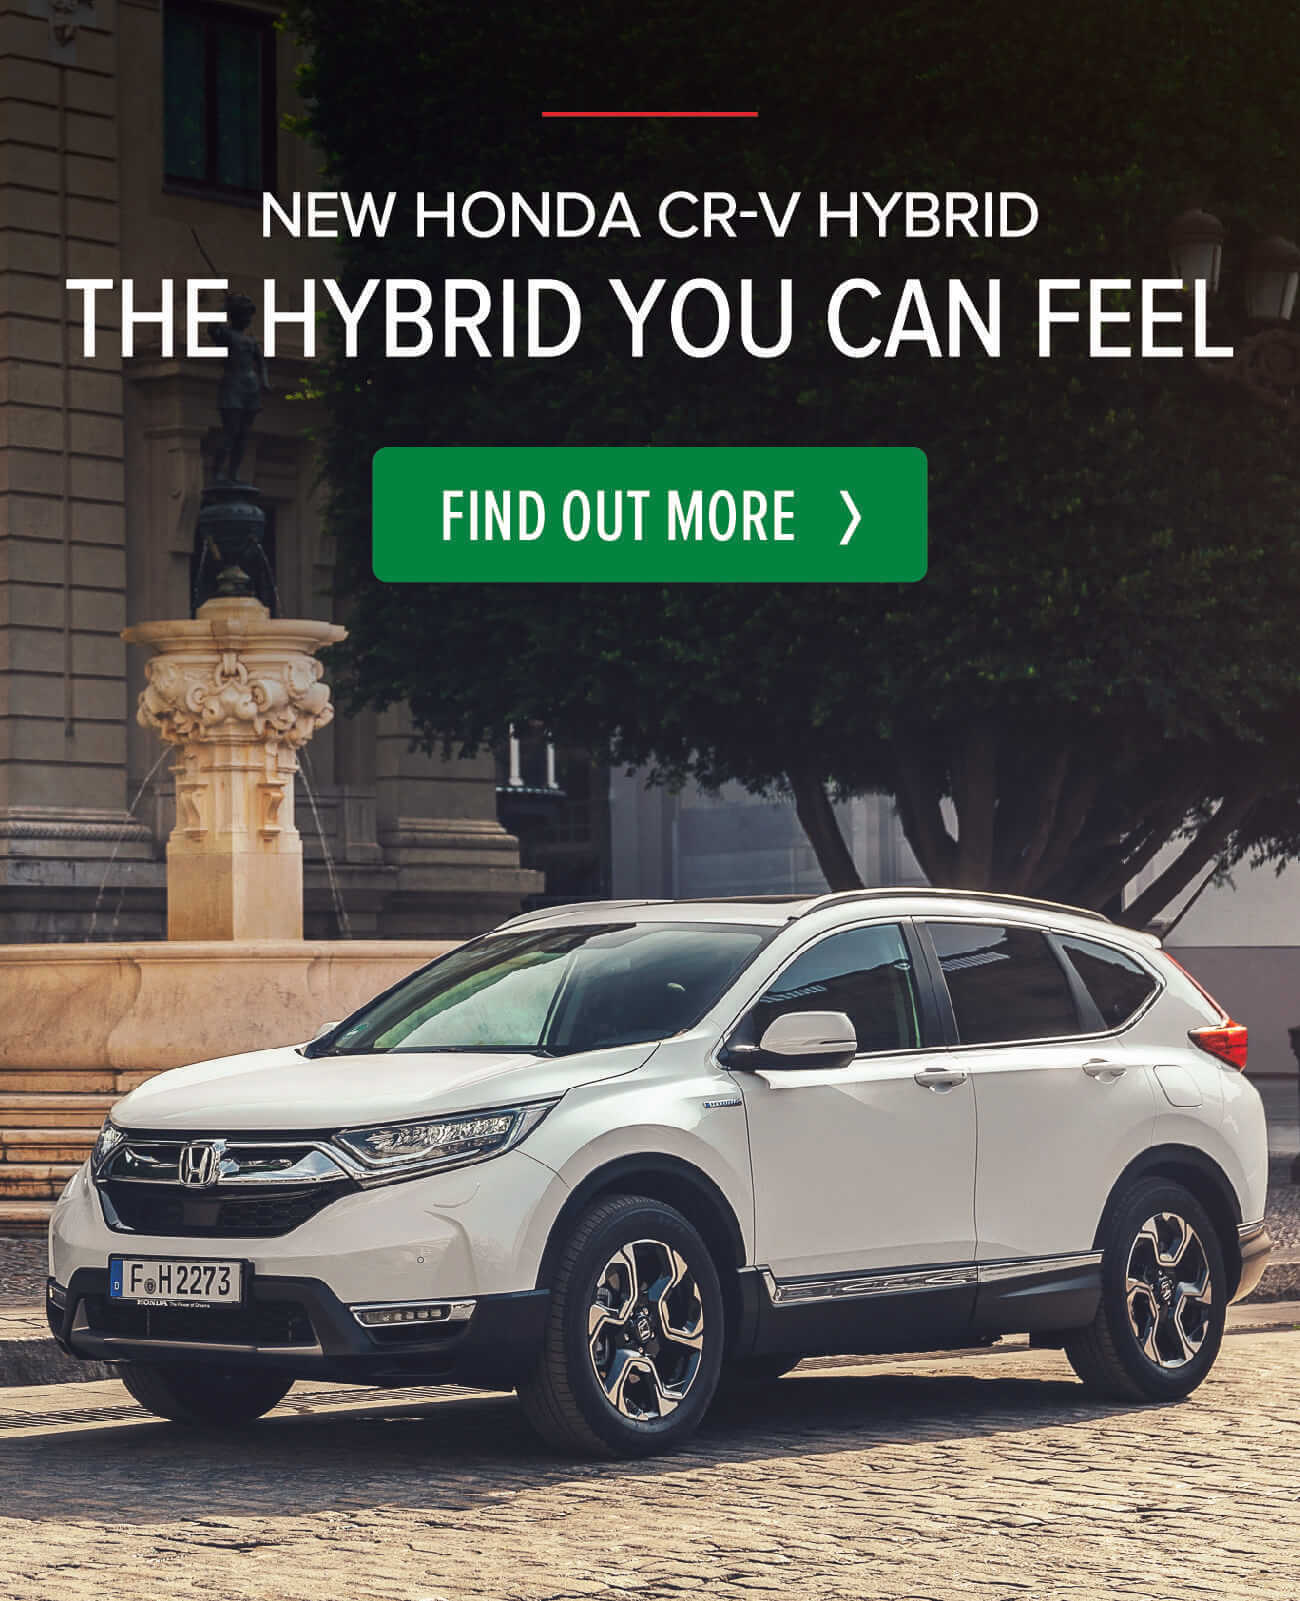 The New Honda CR-V Hybrid BB